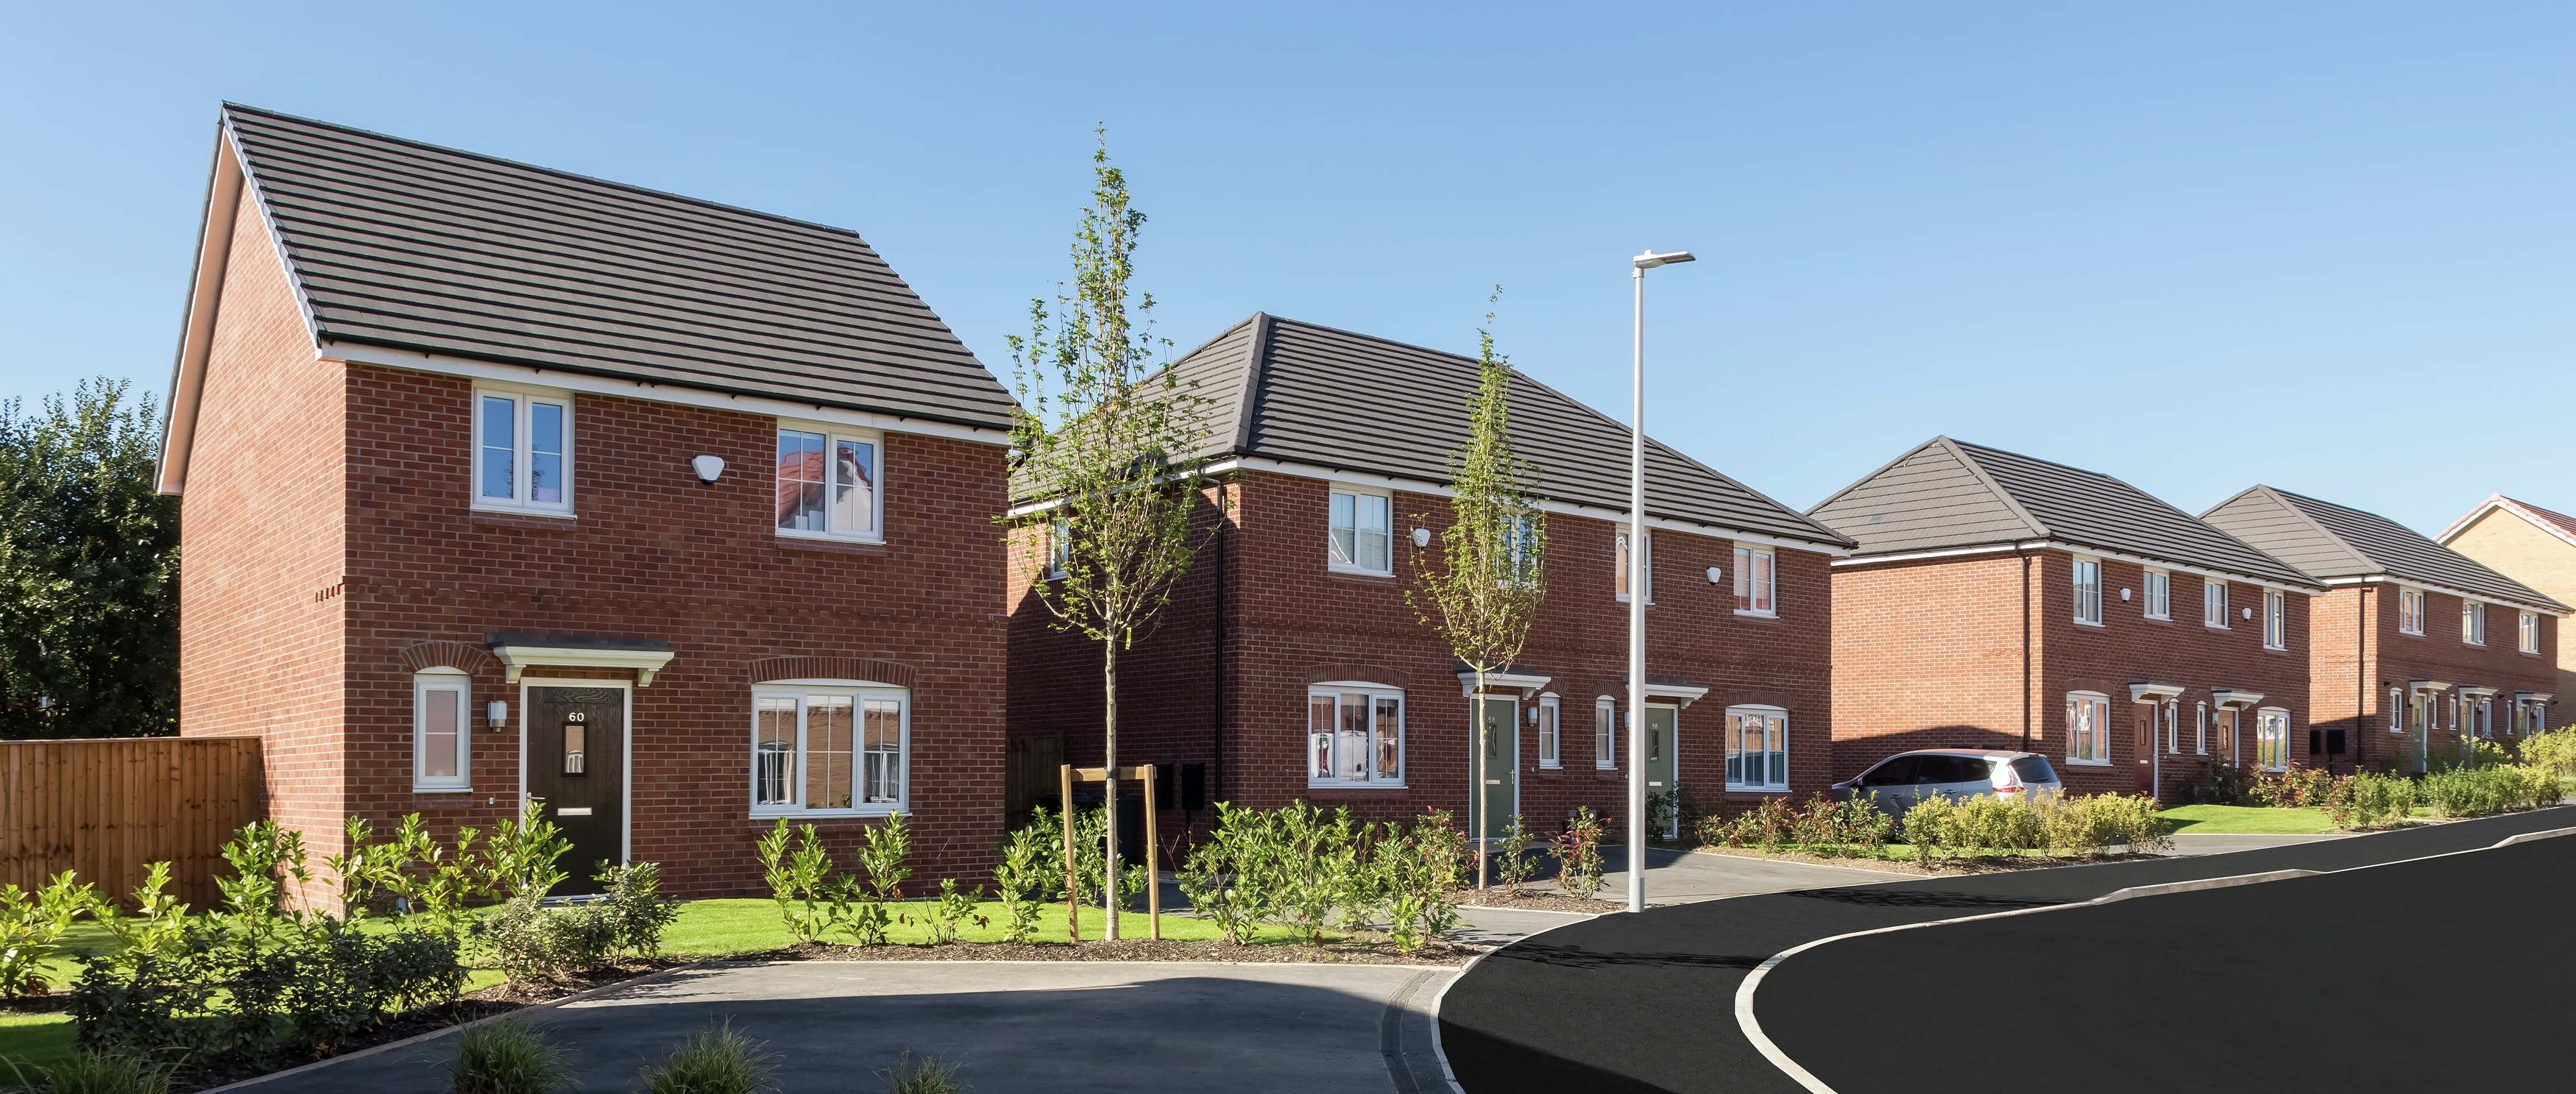 COUNTRYSIDE & EMH BUILD ON AFFORDABLE HOUSING PARTNERSHIP